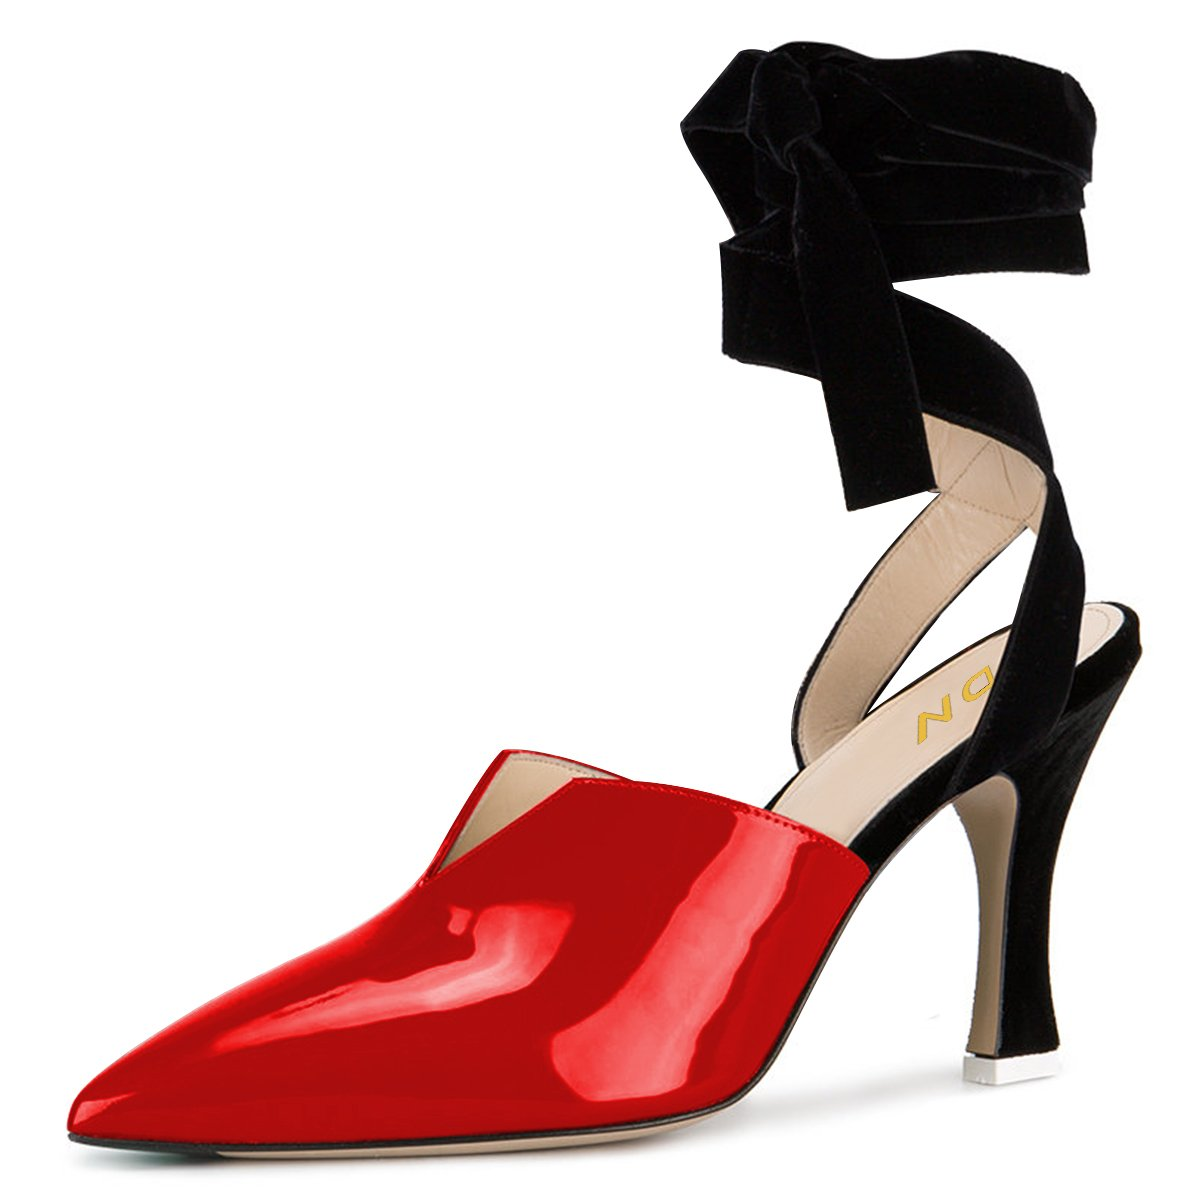 YDN Women Lace up Low Heels Sandals Pointed Toe D'Orsay Pumps Slingback Party Dress Shoes Red 5 by YDN